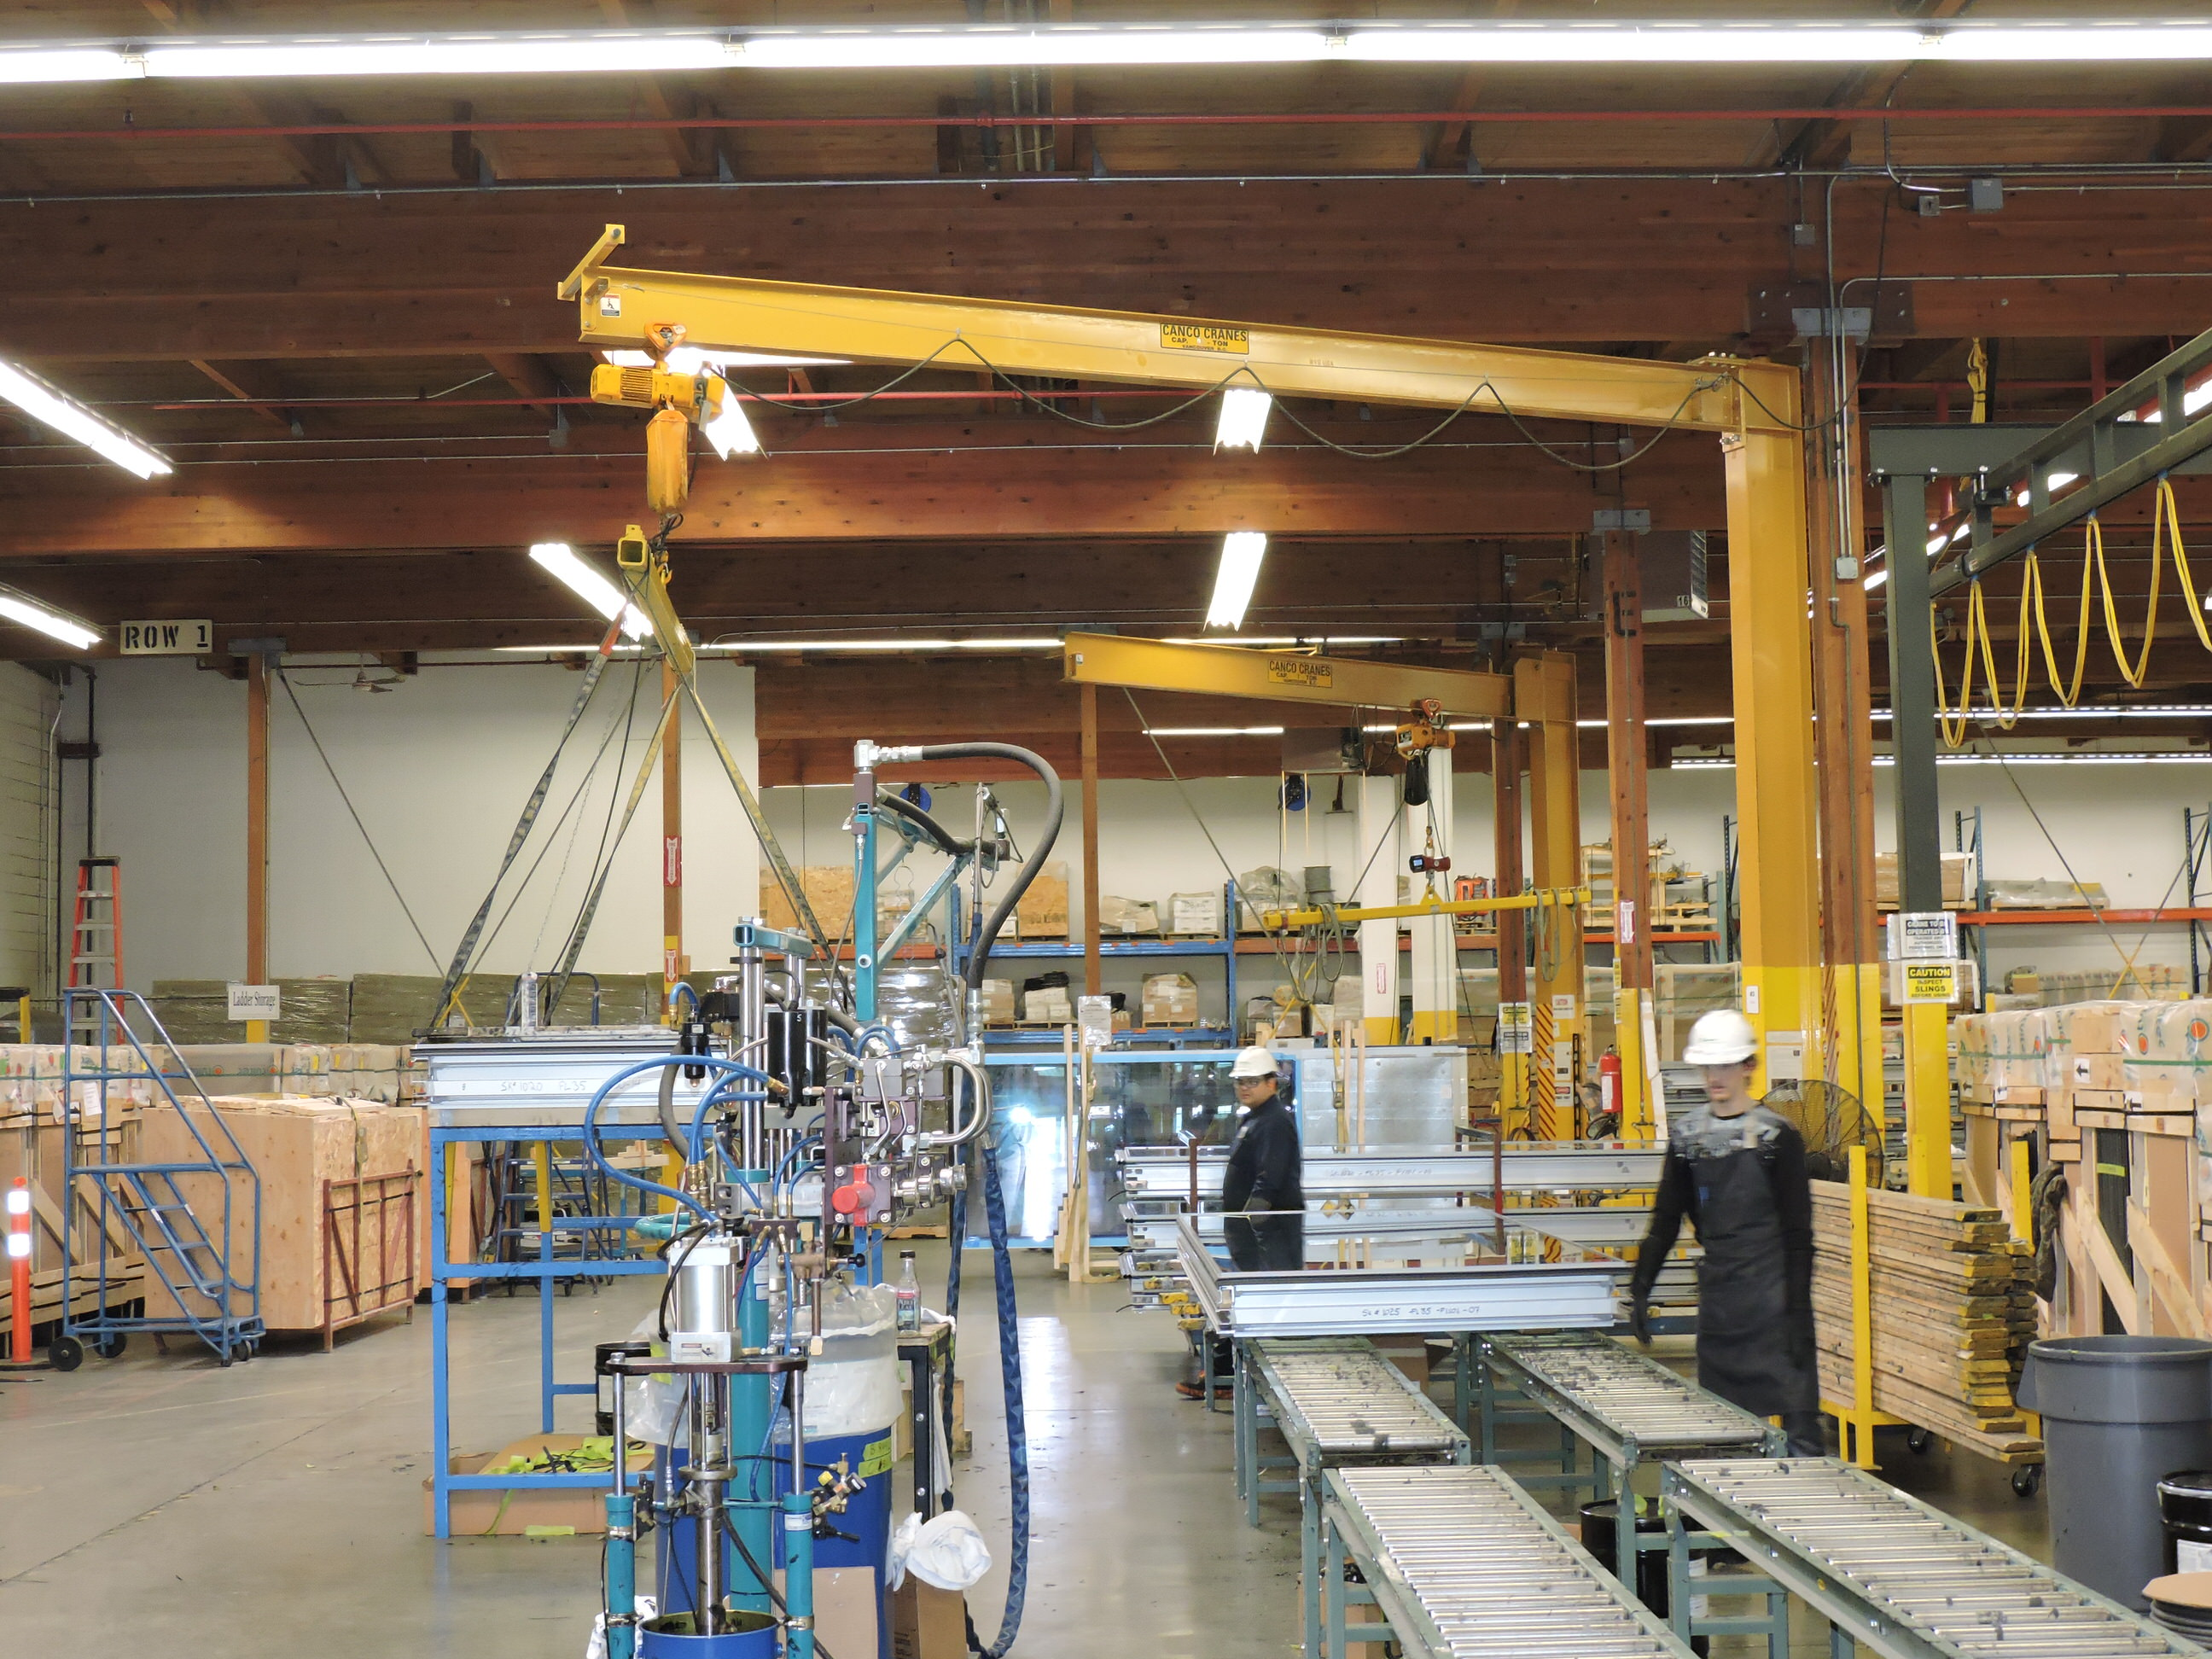 Canco Cranes Your Complete Crane And Hoist Experts Thern Winch Wiring Diagram Usually Find It Through His Extensive List Of Worldwide Contacts Please Contact Us If You Have Any Questions Regarding Parts Hoisting Equipment Or